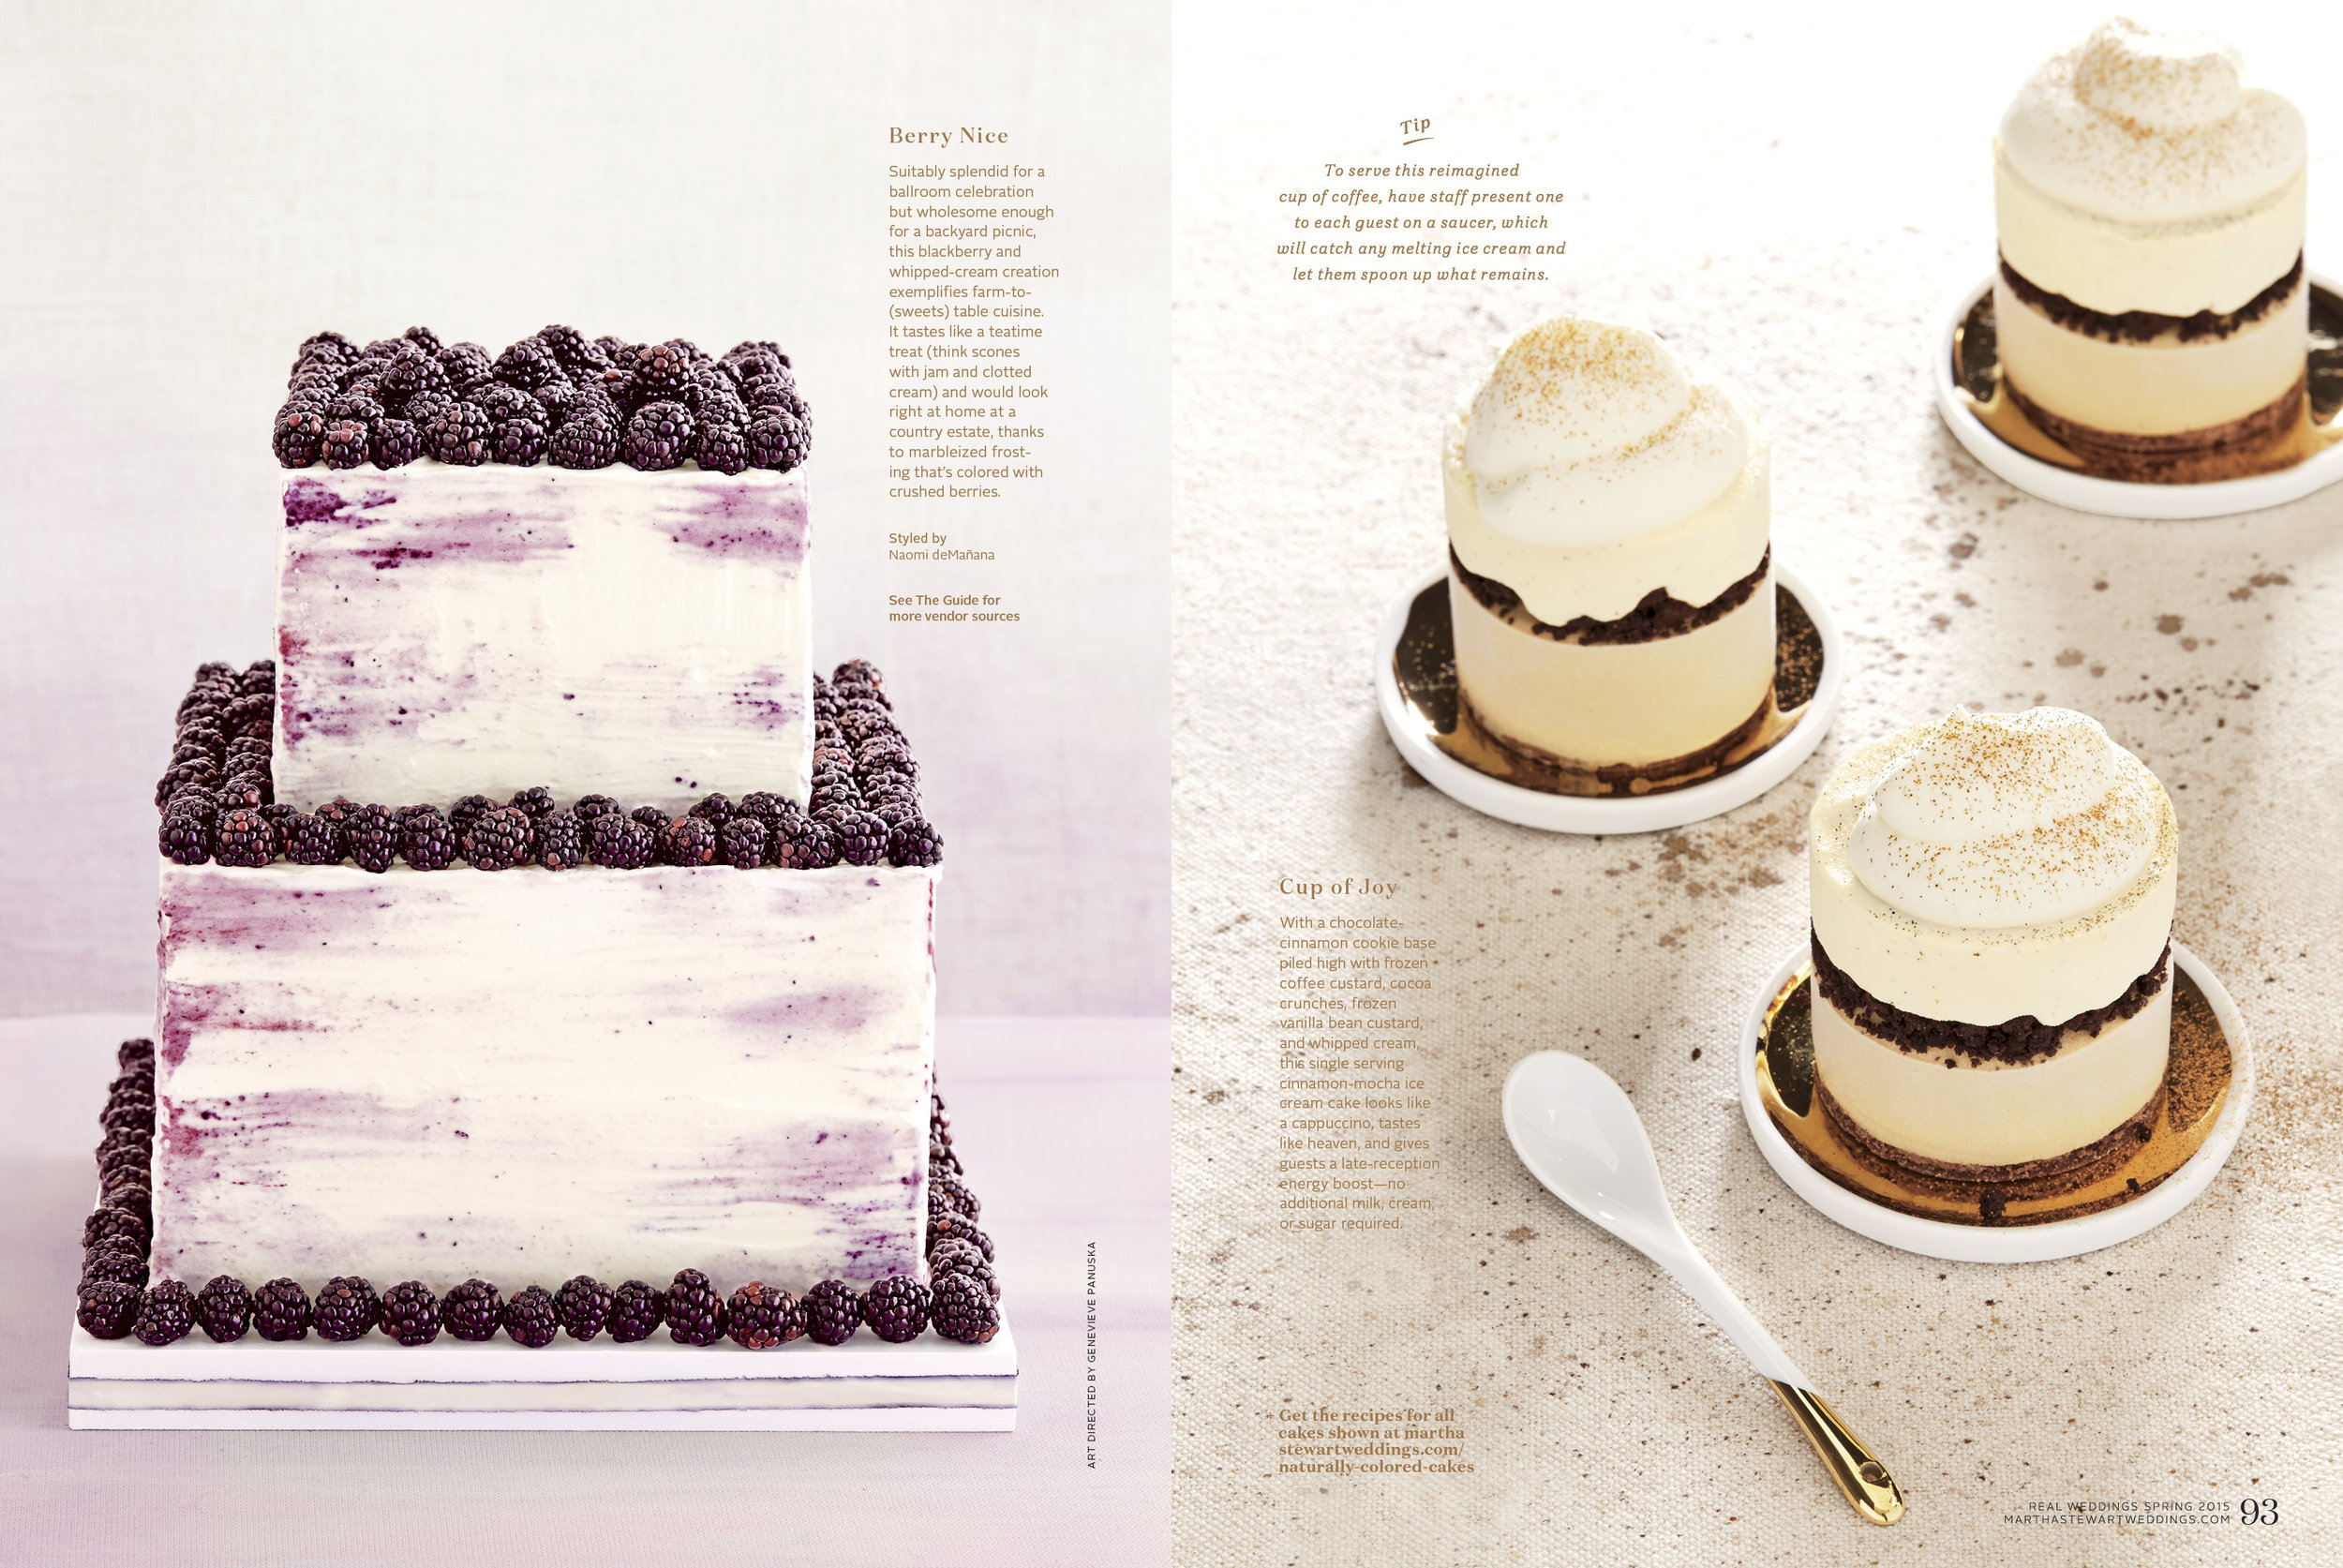 Blackberry Cake and Cinnamon Cappuccino Ice Cream Cakes. Photo by Linda Pugliese for Martha Stewart Weddings